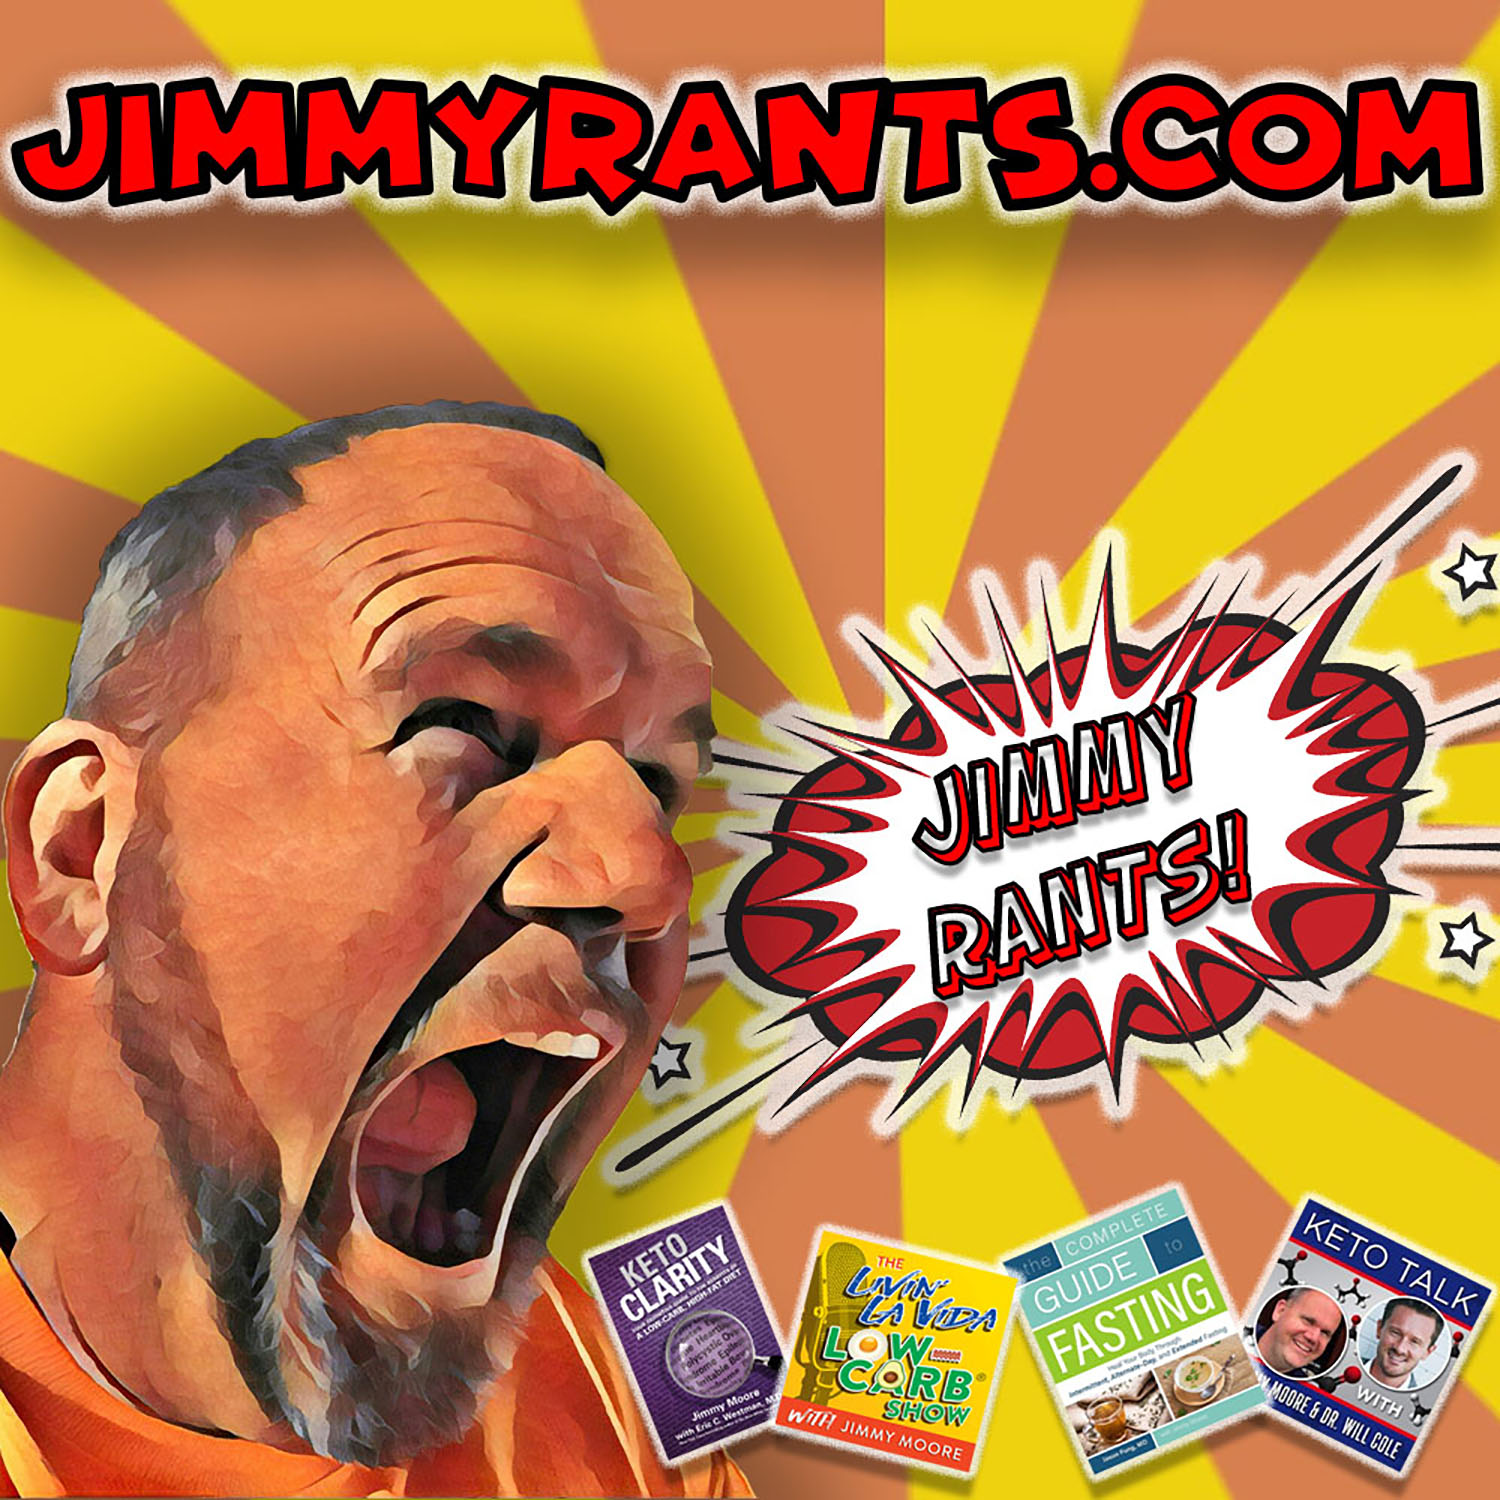 Jimmy Rants Episode 187 | Why is there secrecy and shame about #childhoodtrauma?